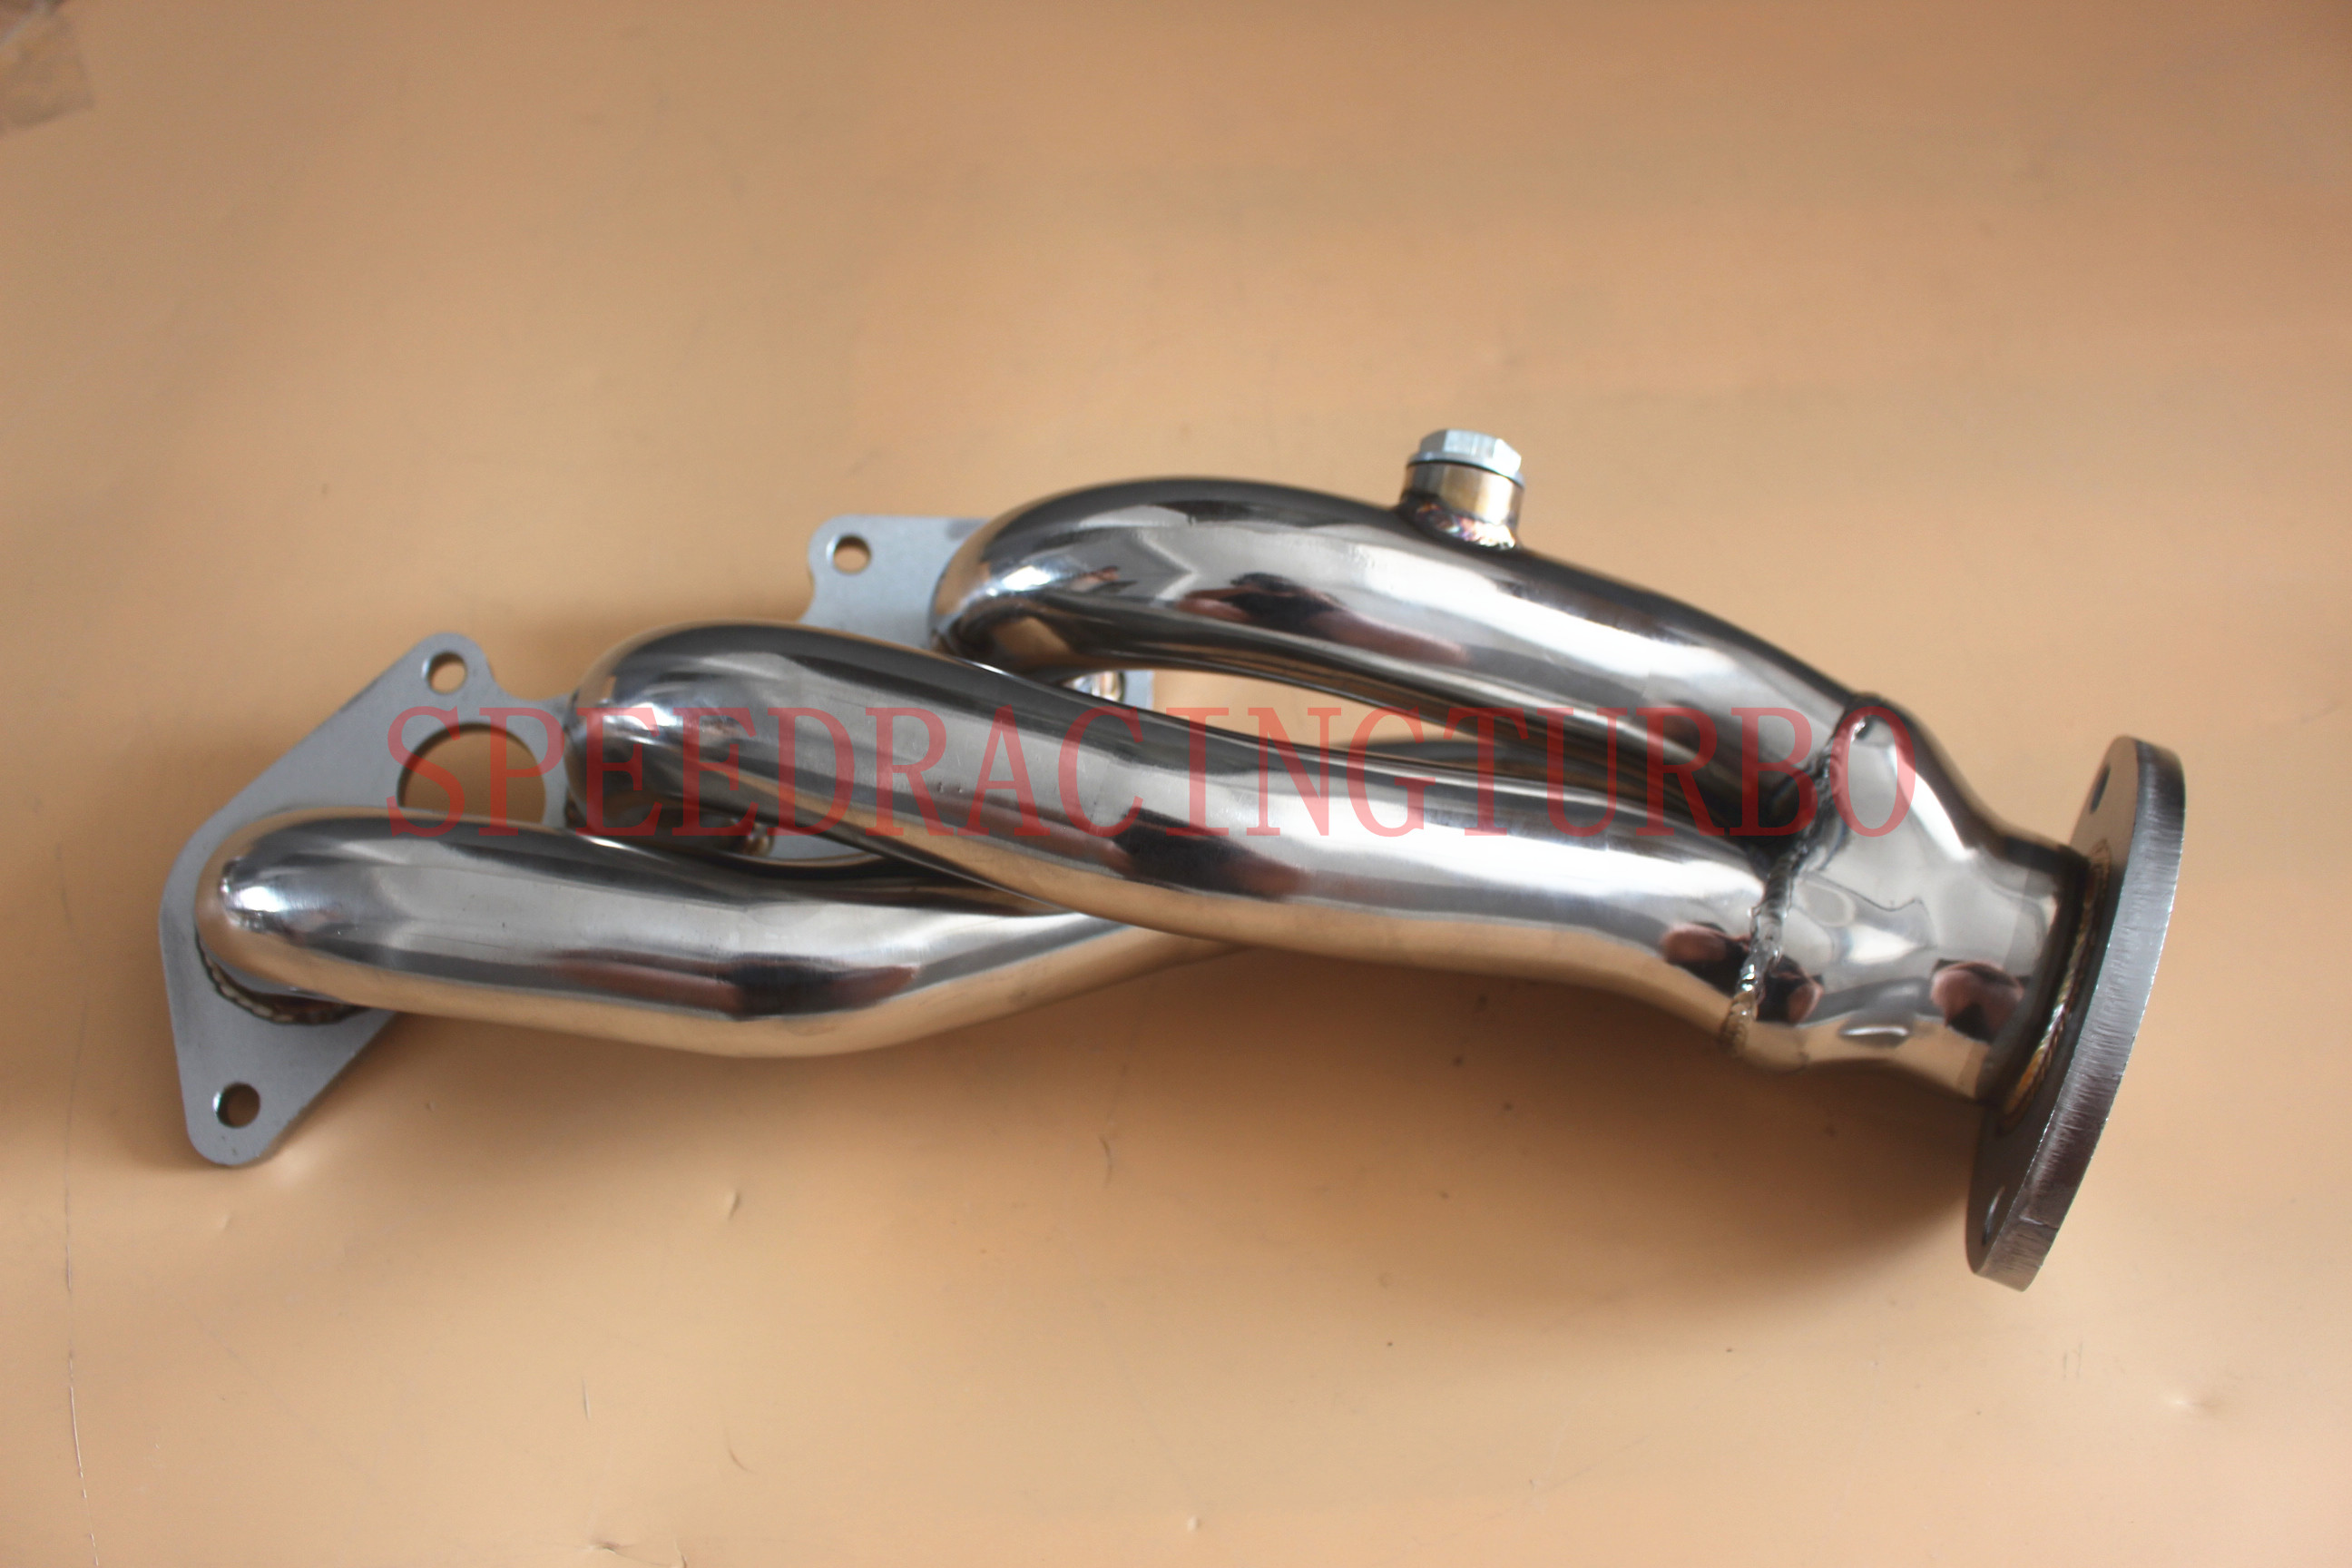 Stainless Steel Exhaust Header Manifold For Lexus 06-13  Exhaust Header For IS250 2.5L/IS350 3.5L V6